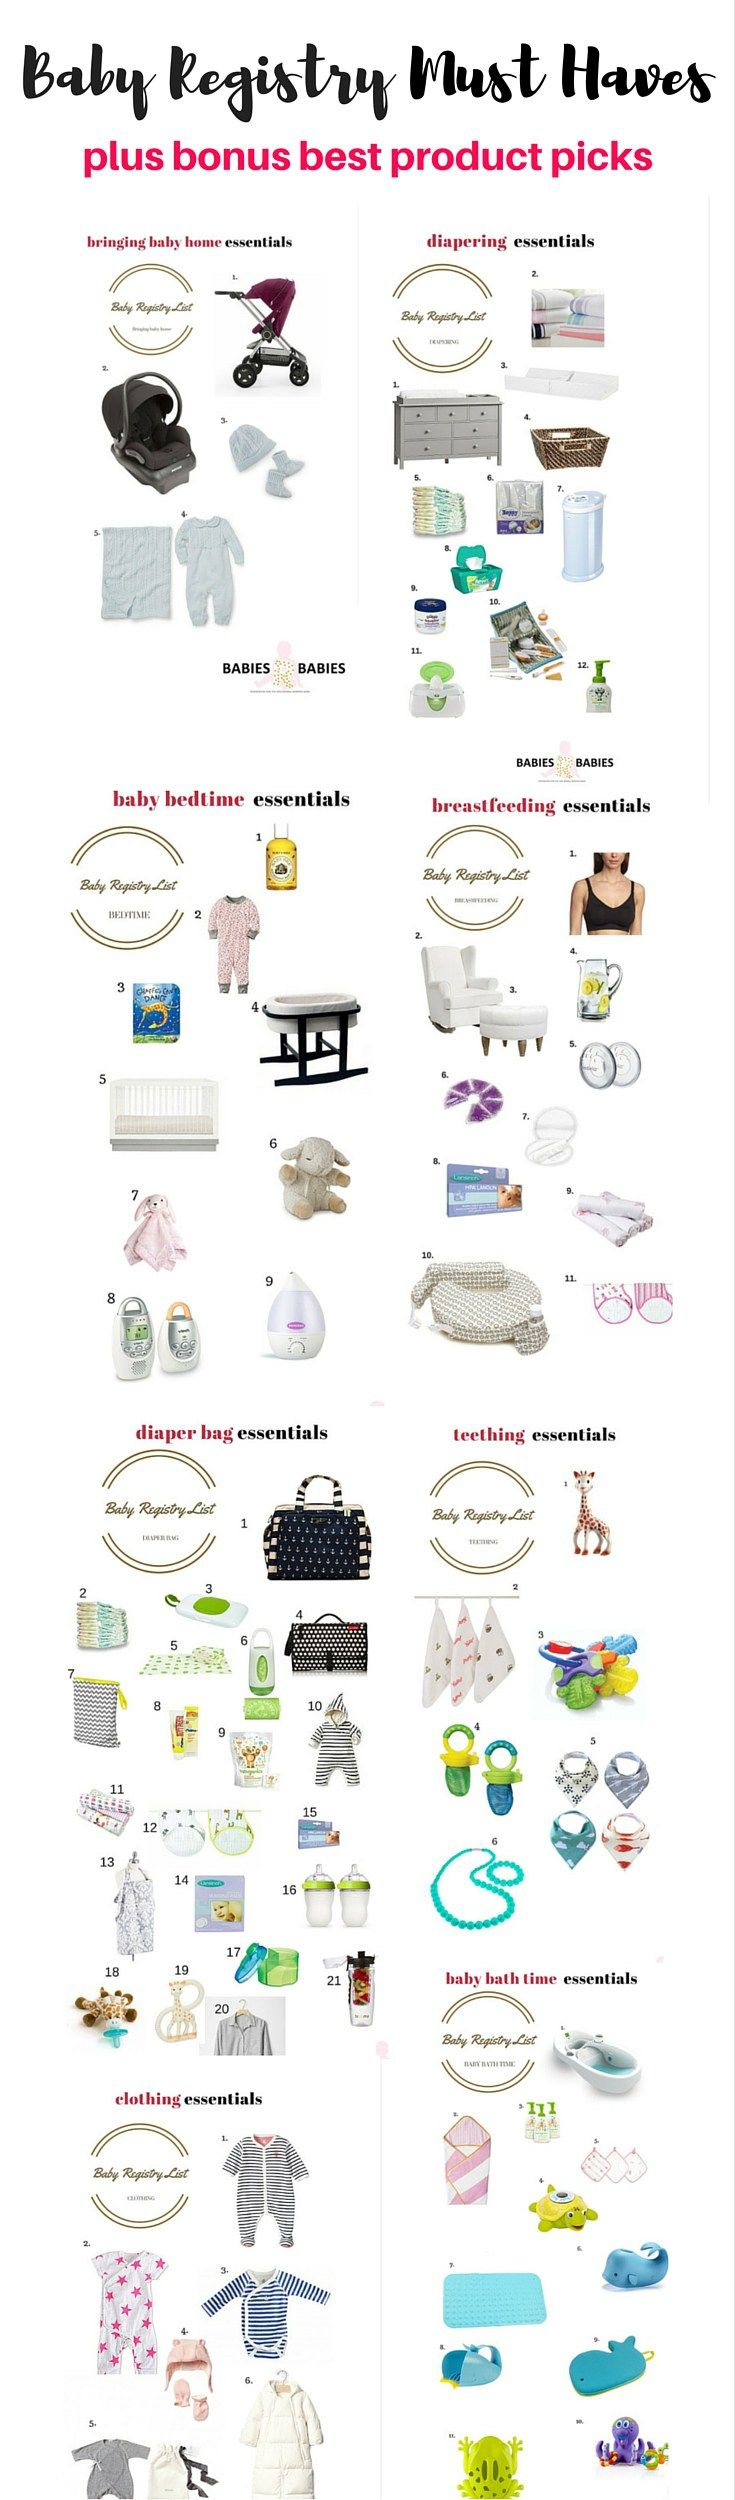 The baby chicks ultimate baby registry checklist baby registry baby registry list sciox Choice Image